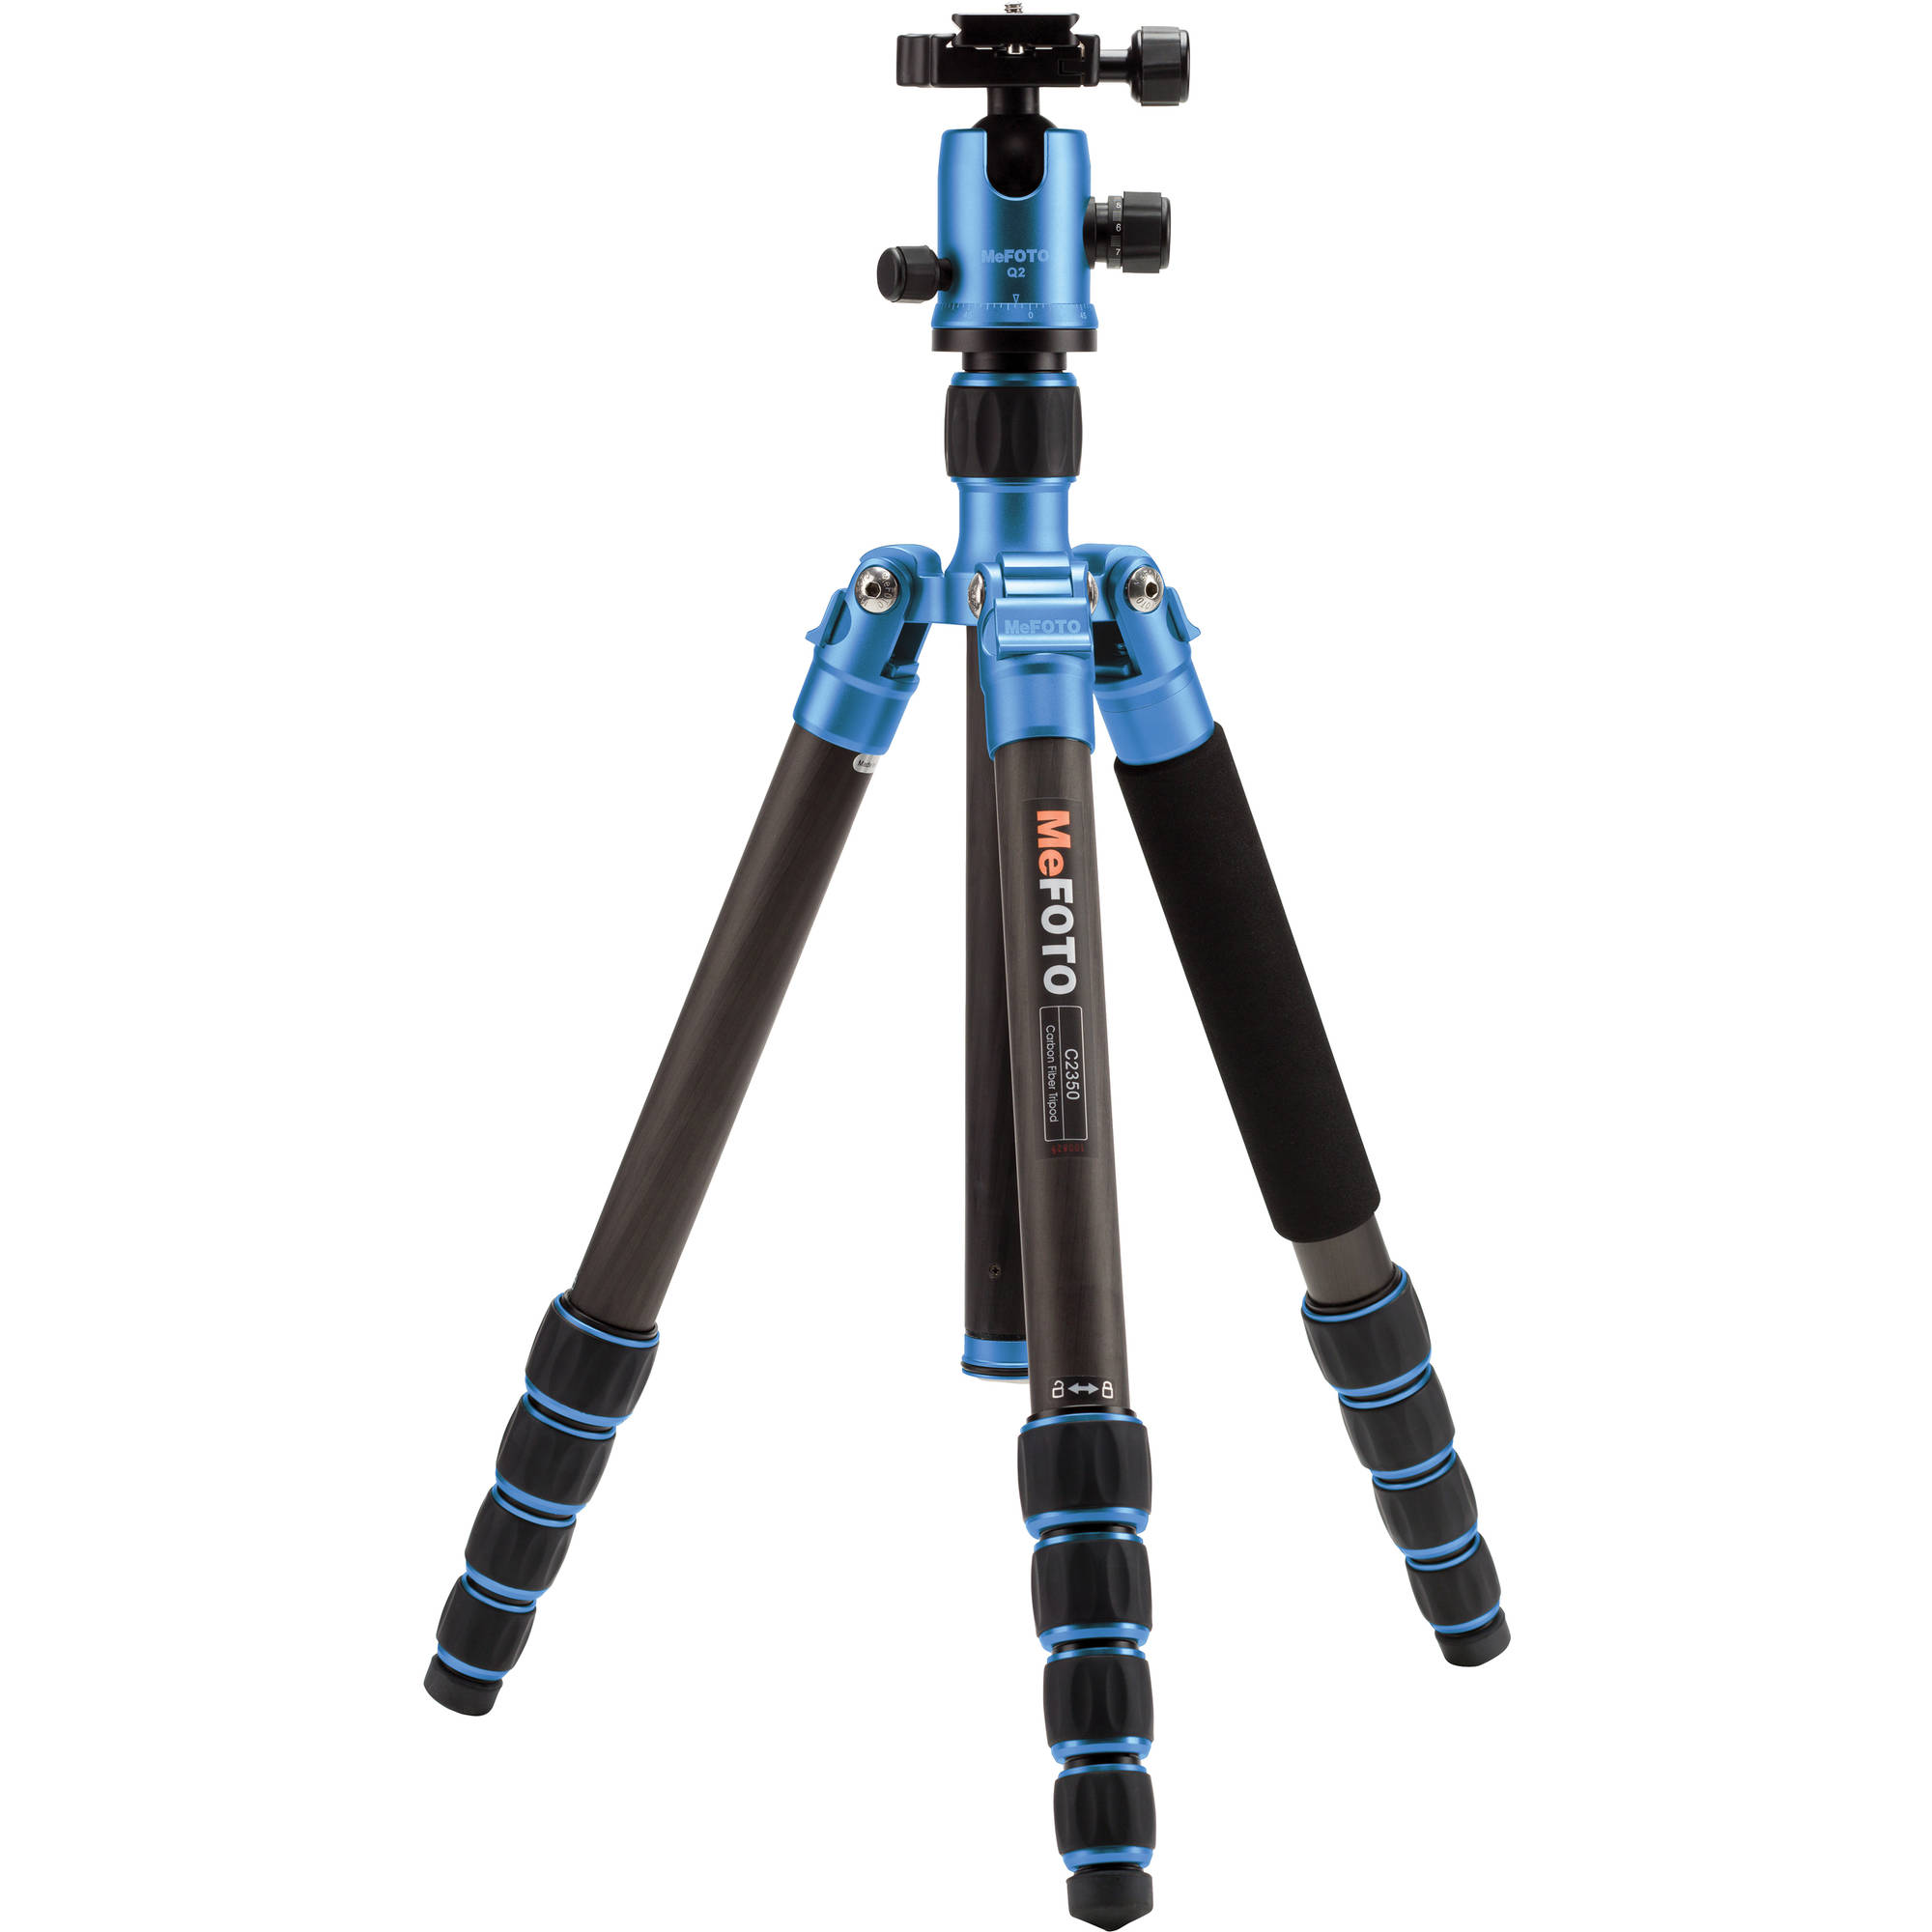 Image of MeFOTO GlobeTrotter Carbon Fiber Travel Tripod Kit (Blue)